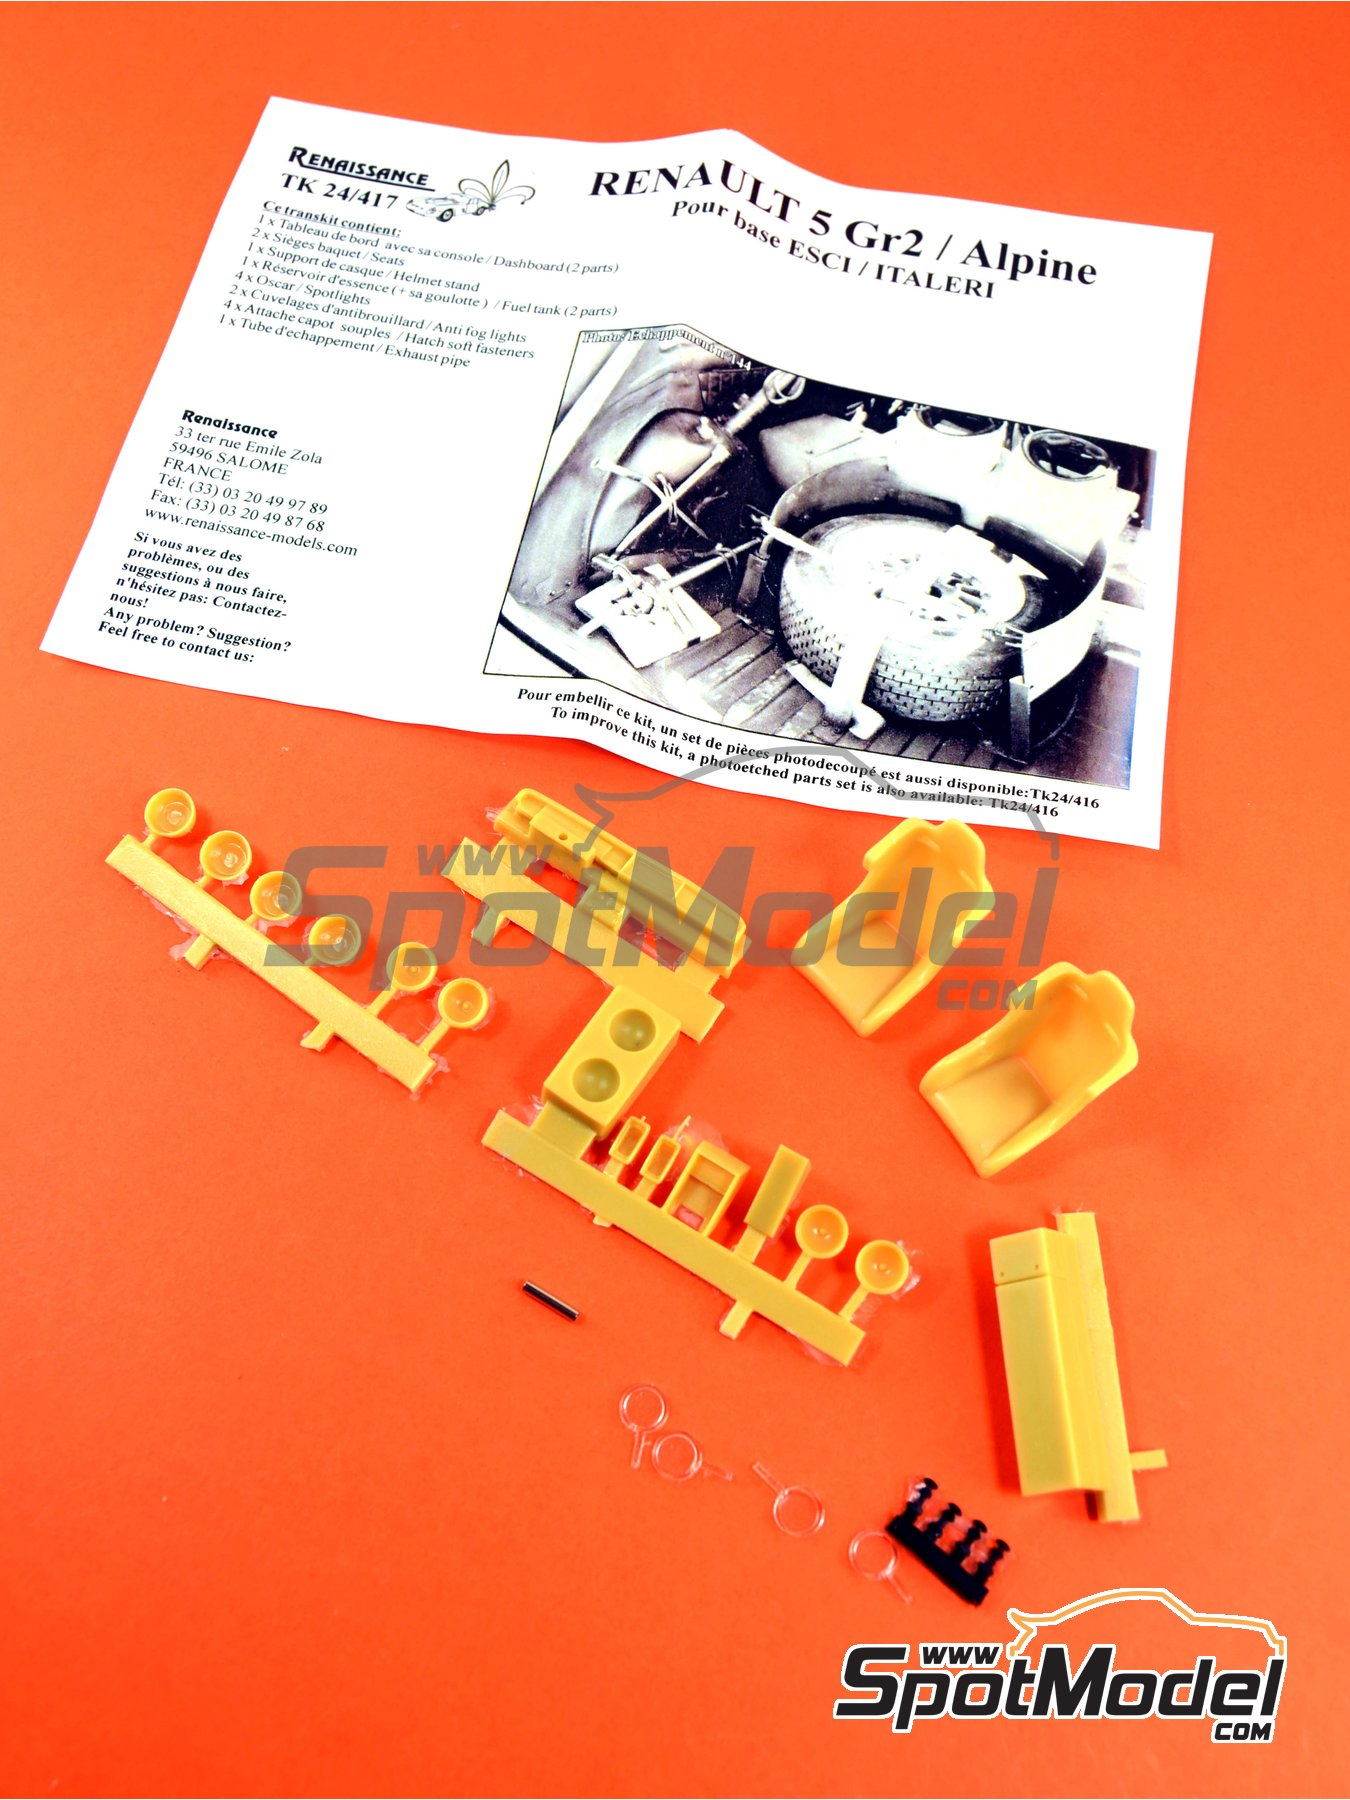 Renault 5 Alpine Group 2 | Detail up set in 1/24 scale manufactured by Renaissance Models (ref.TK24-417) image